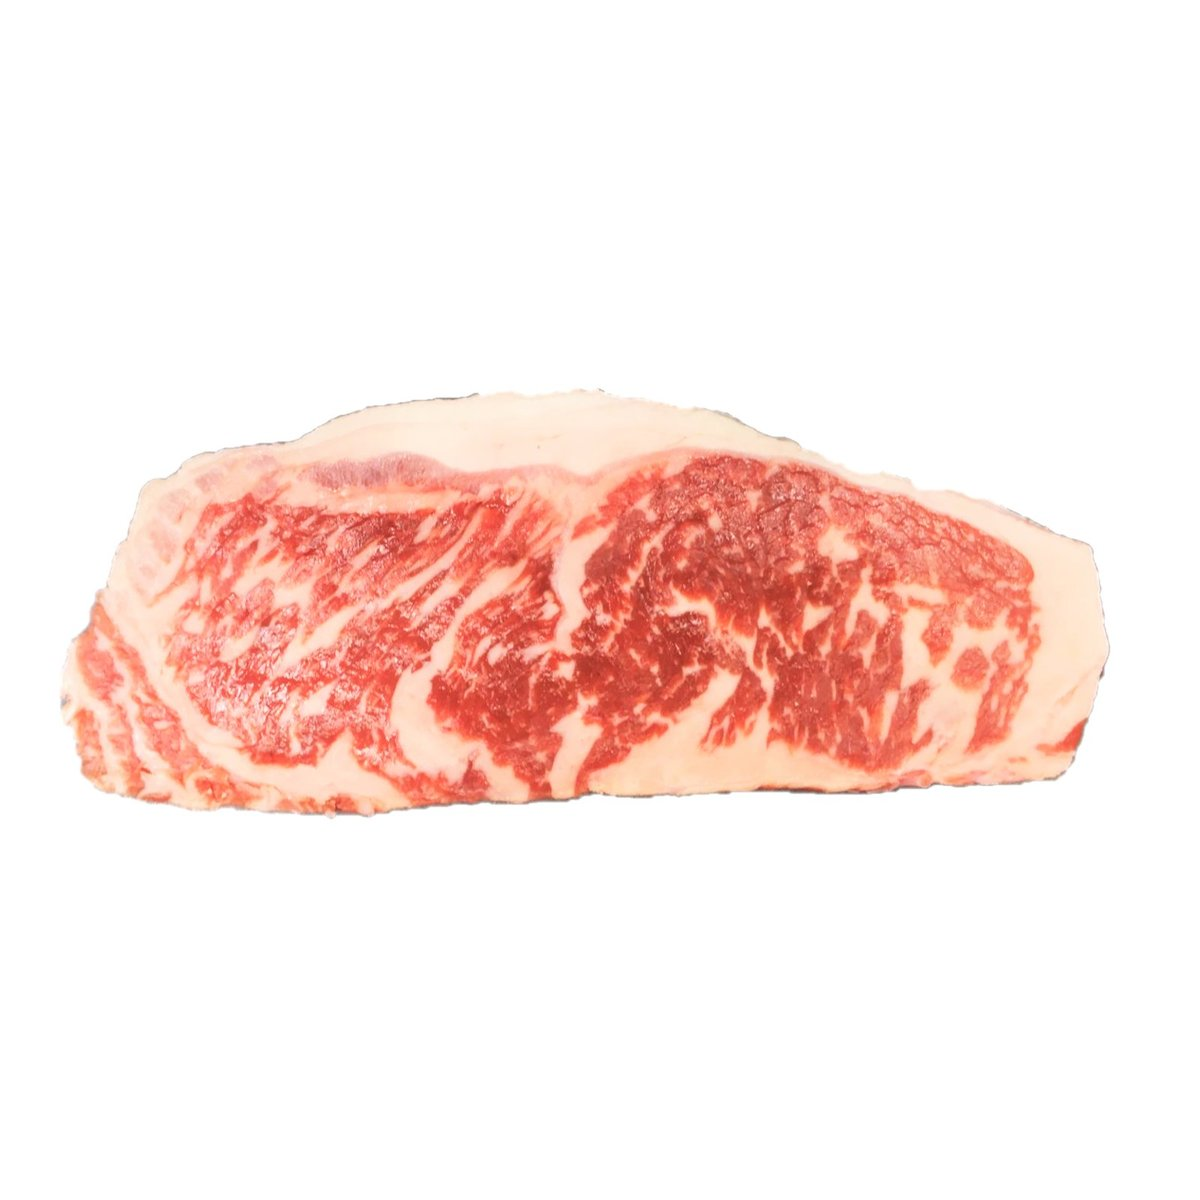 AUSTRALIAN 300 DAYS GRAIN-FED BEEF SIRLOIN(280g) (Frozen)